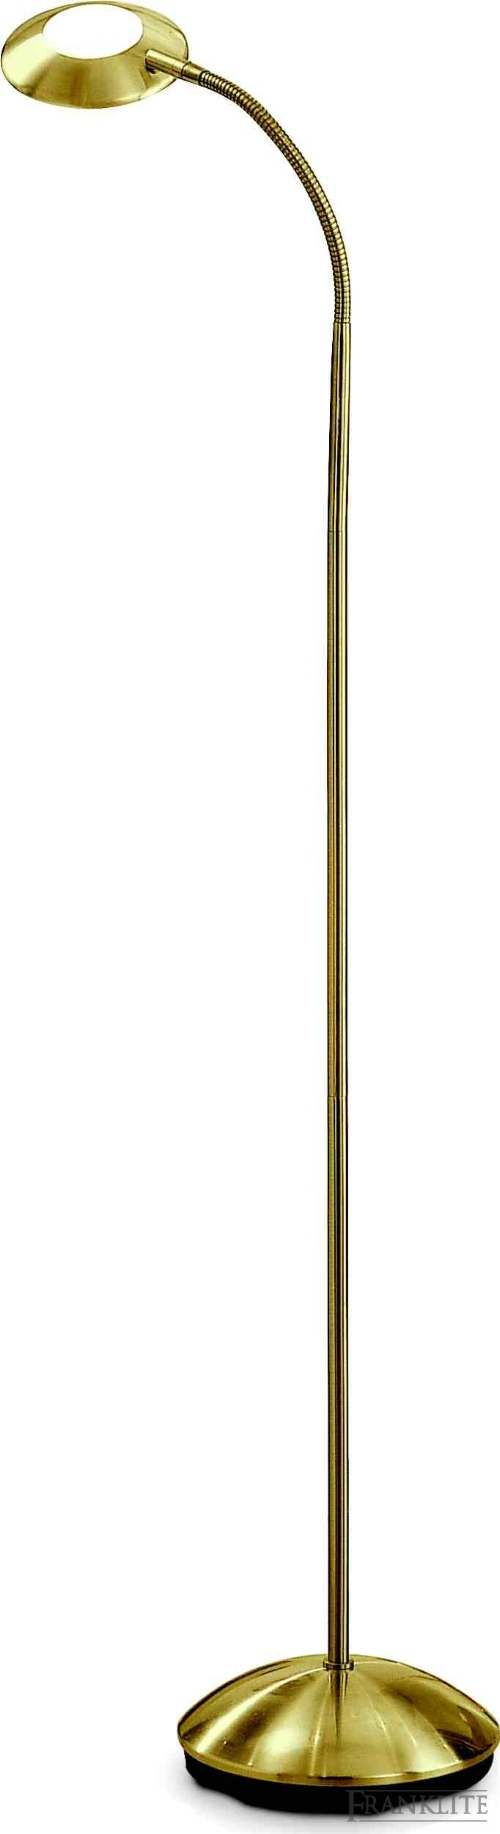 Satin brass finish with flex arm adjustable head